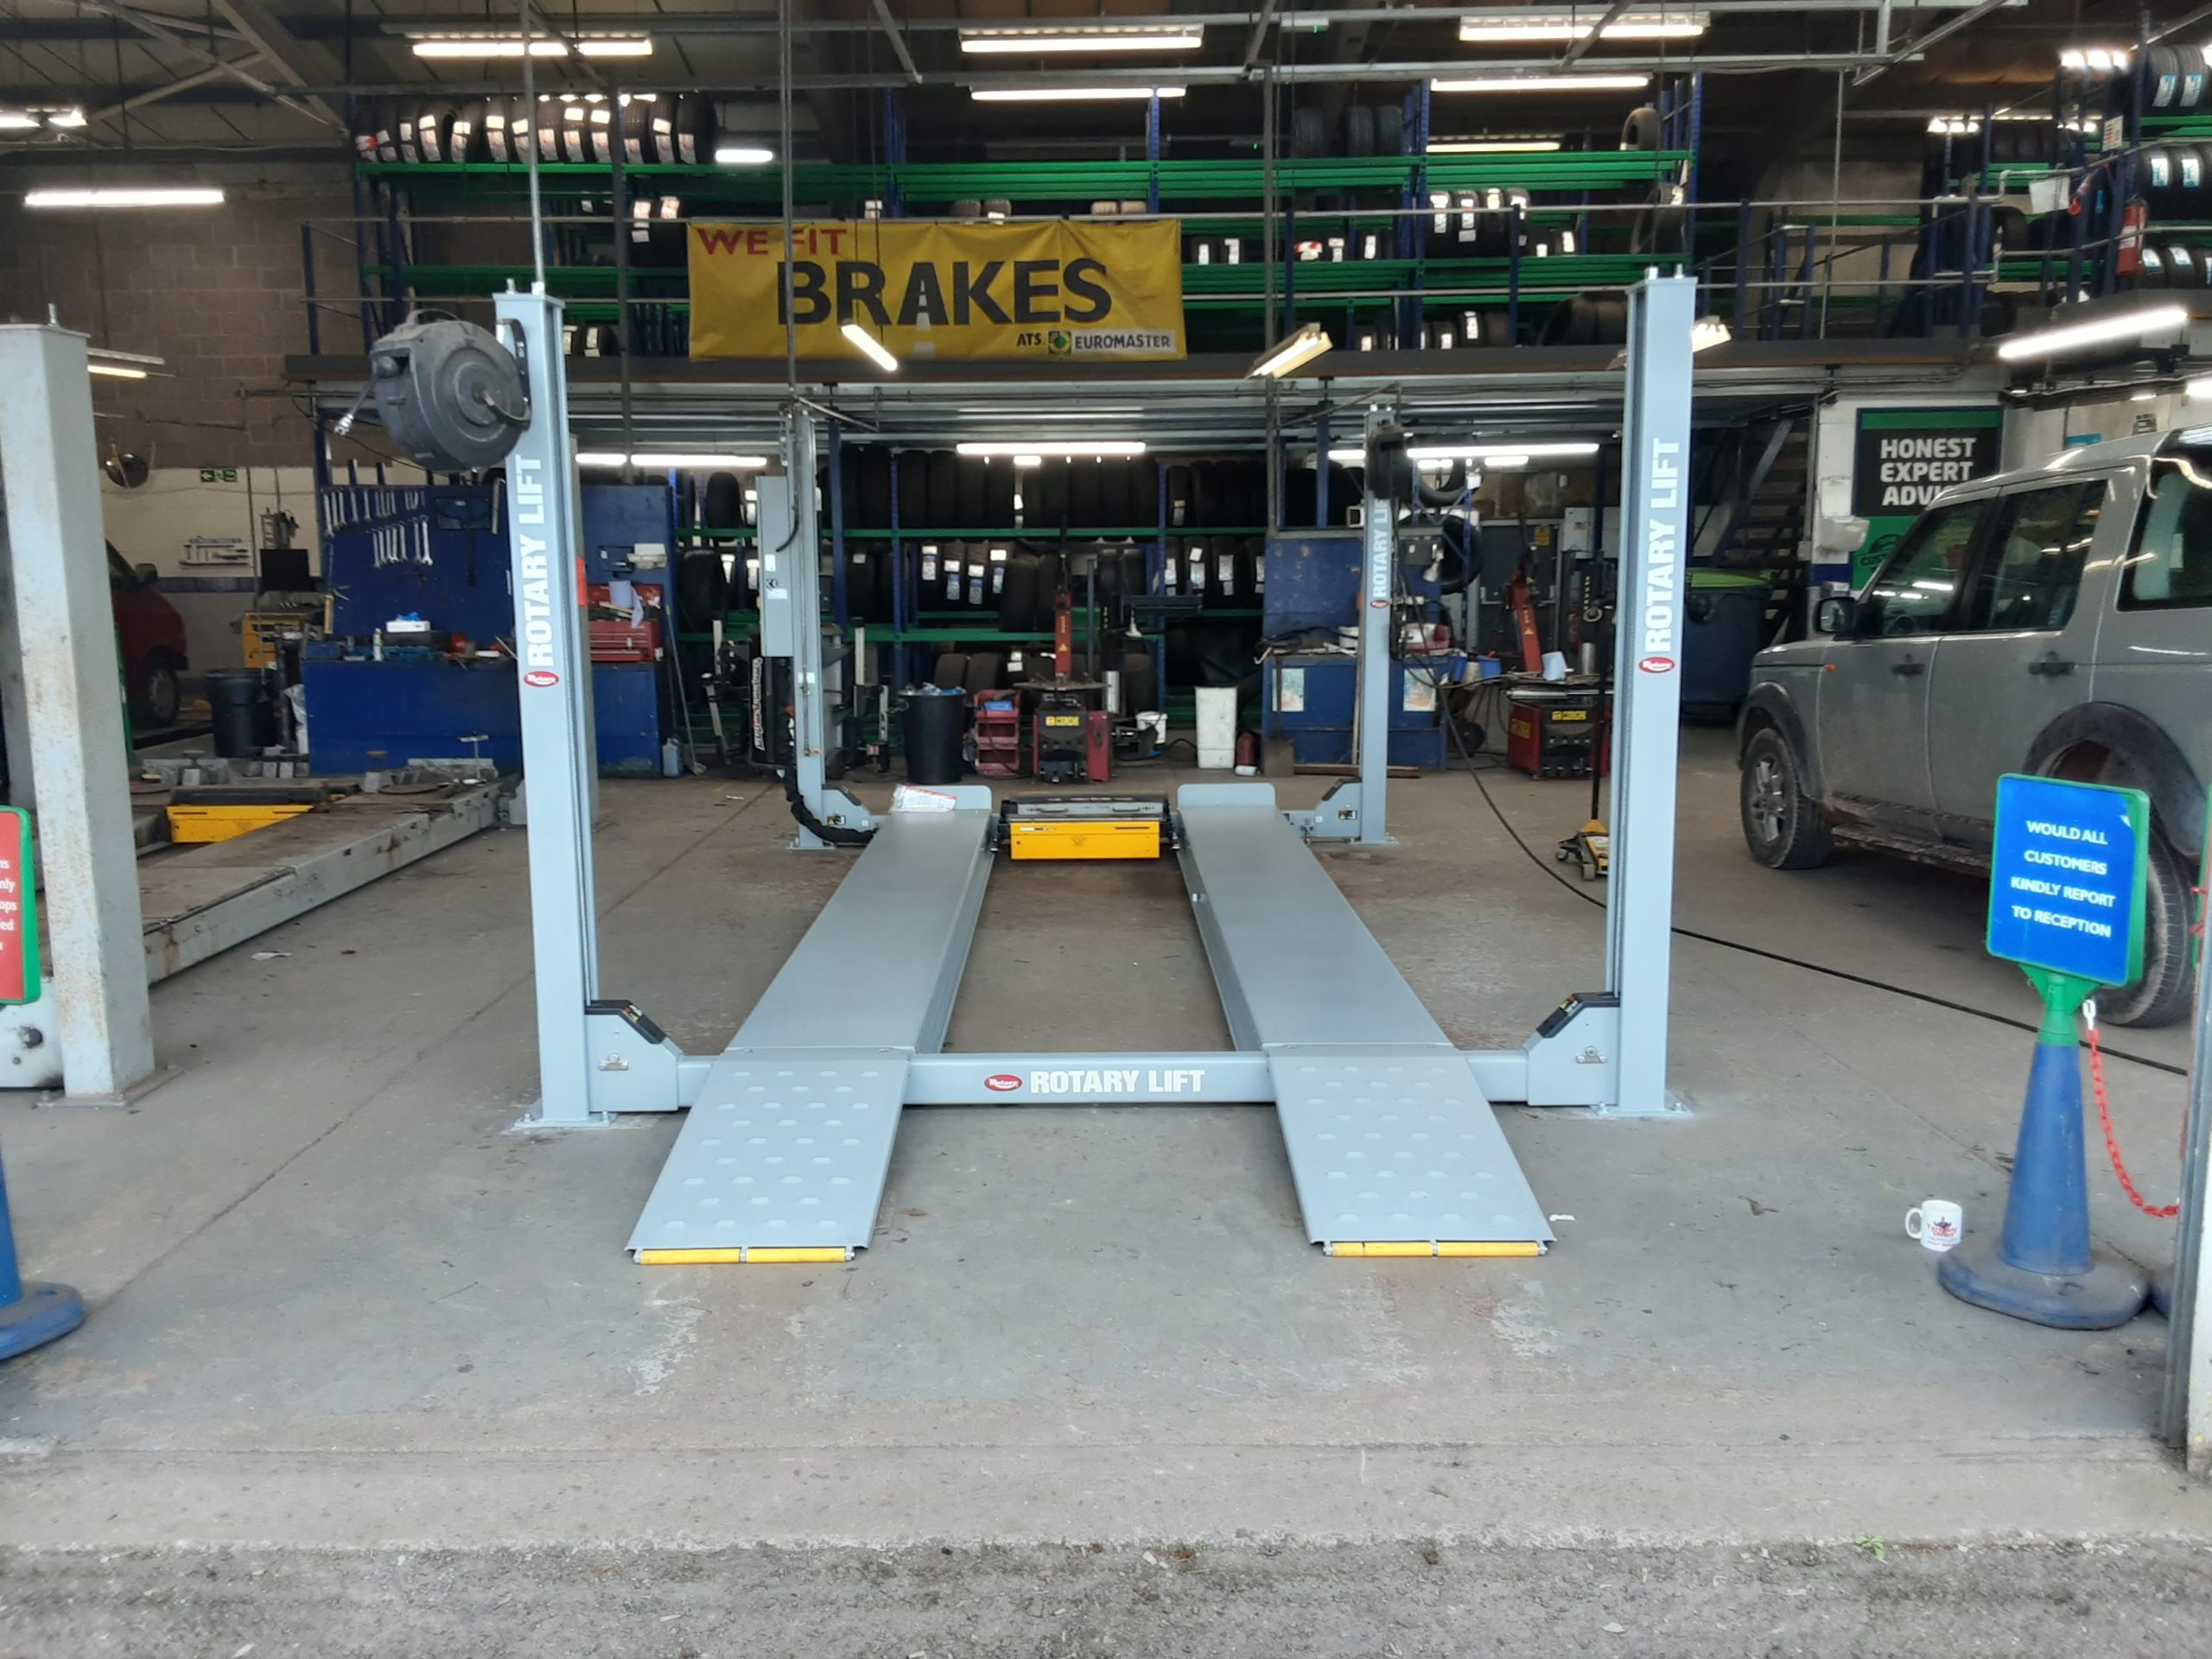 The ISN Garage Assist install team took on the removal and installation of a Rotary 4 Post Vehicle Lift at the busy ATS Euromaster Centre in Barnstaple.